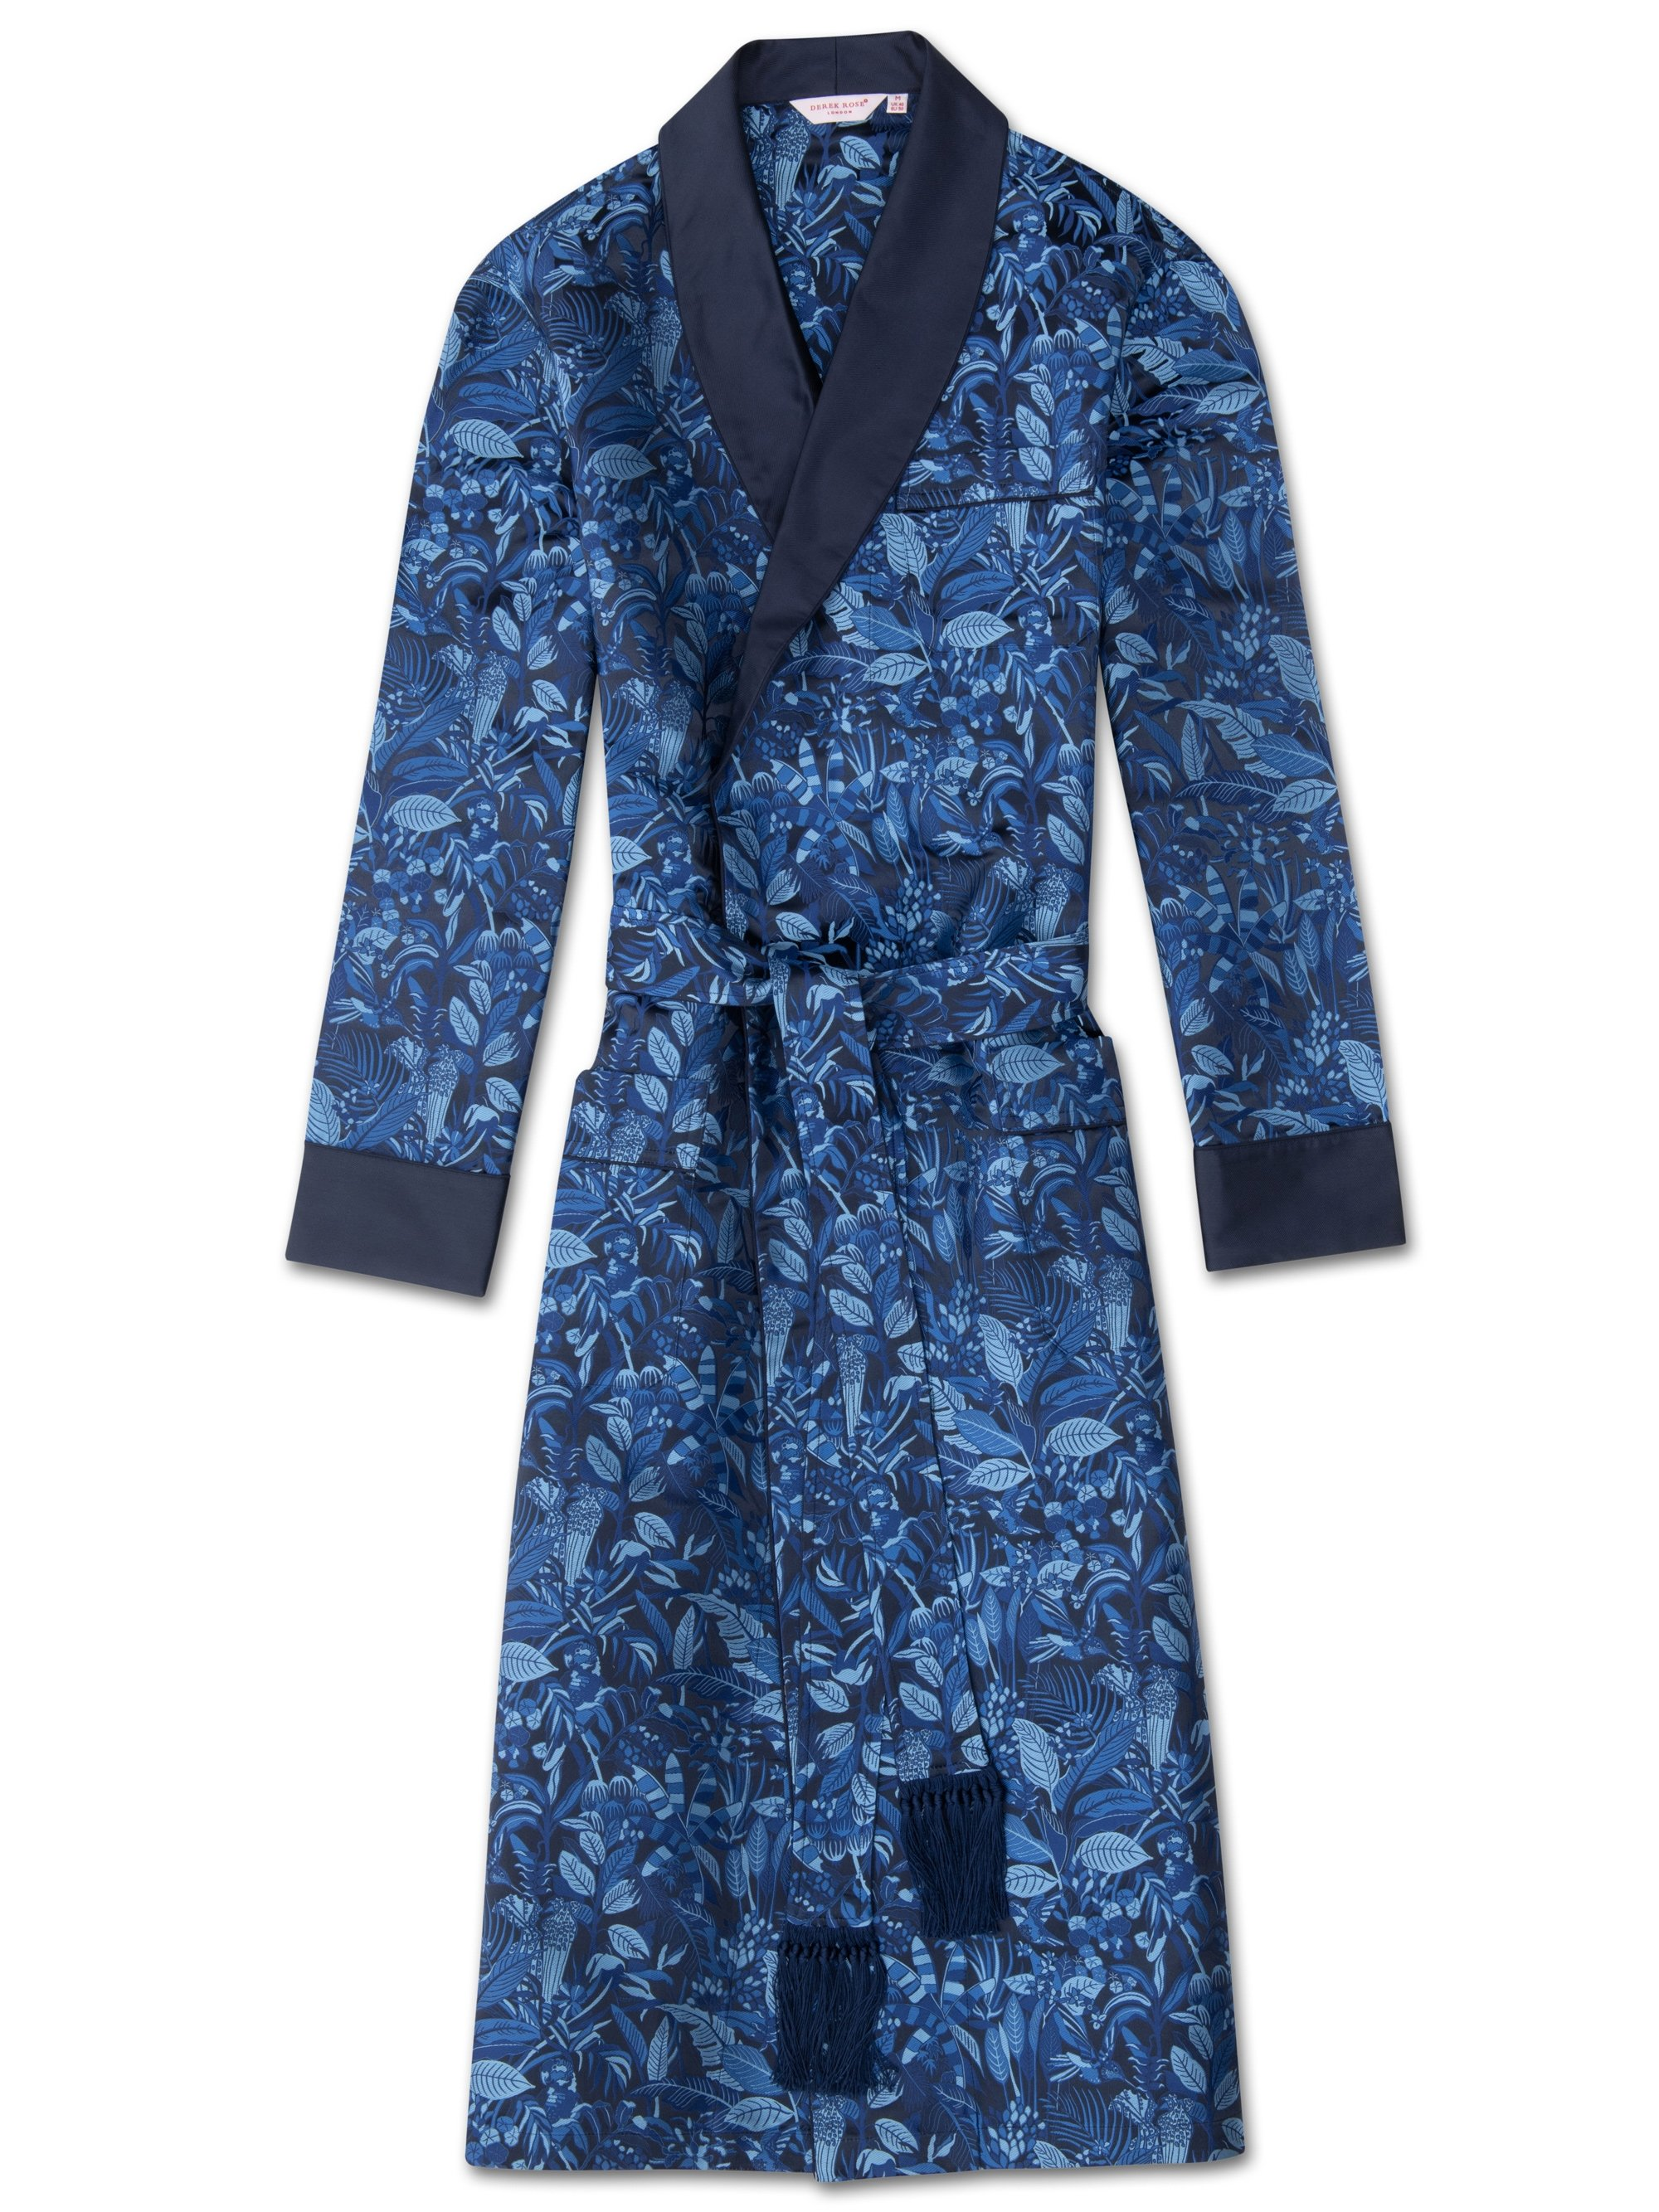 Men's Tasseled Belt Dressing Gown Verona 44 Pure Silk Jacquard Blue